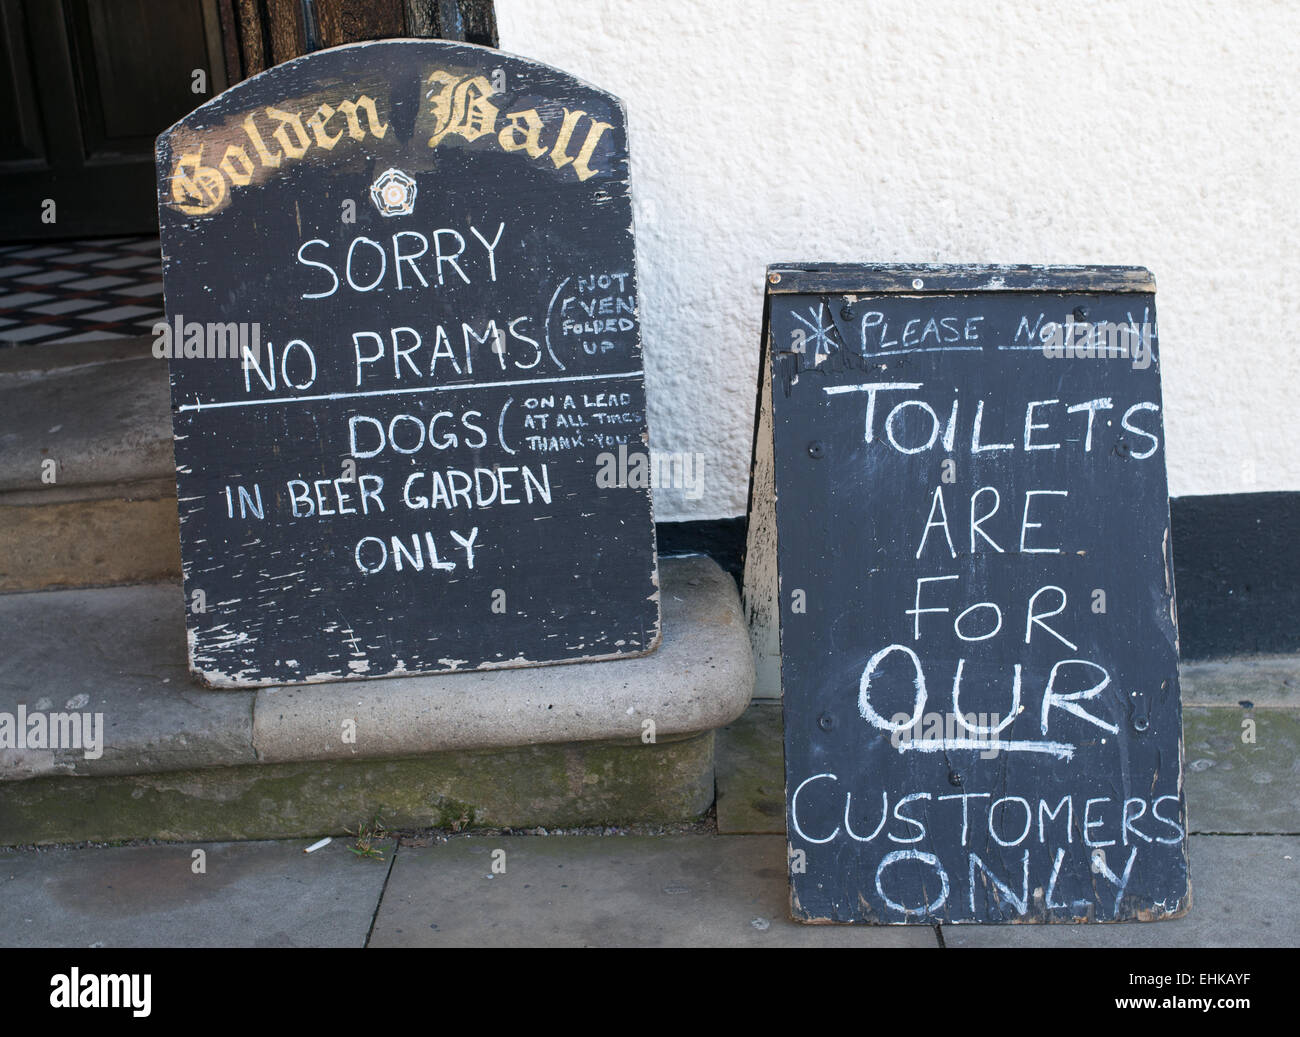 unwelcoming-signs-outside-the-golden-ball-pub-in-scarborough-north-EHKAYF.jpg